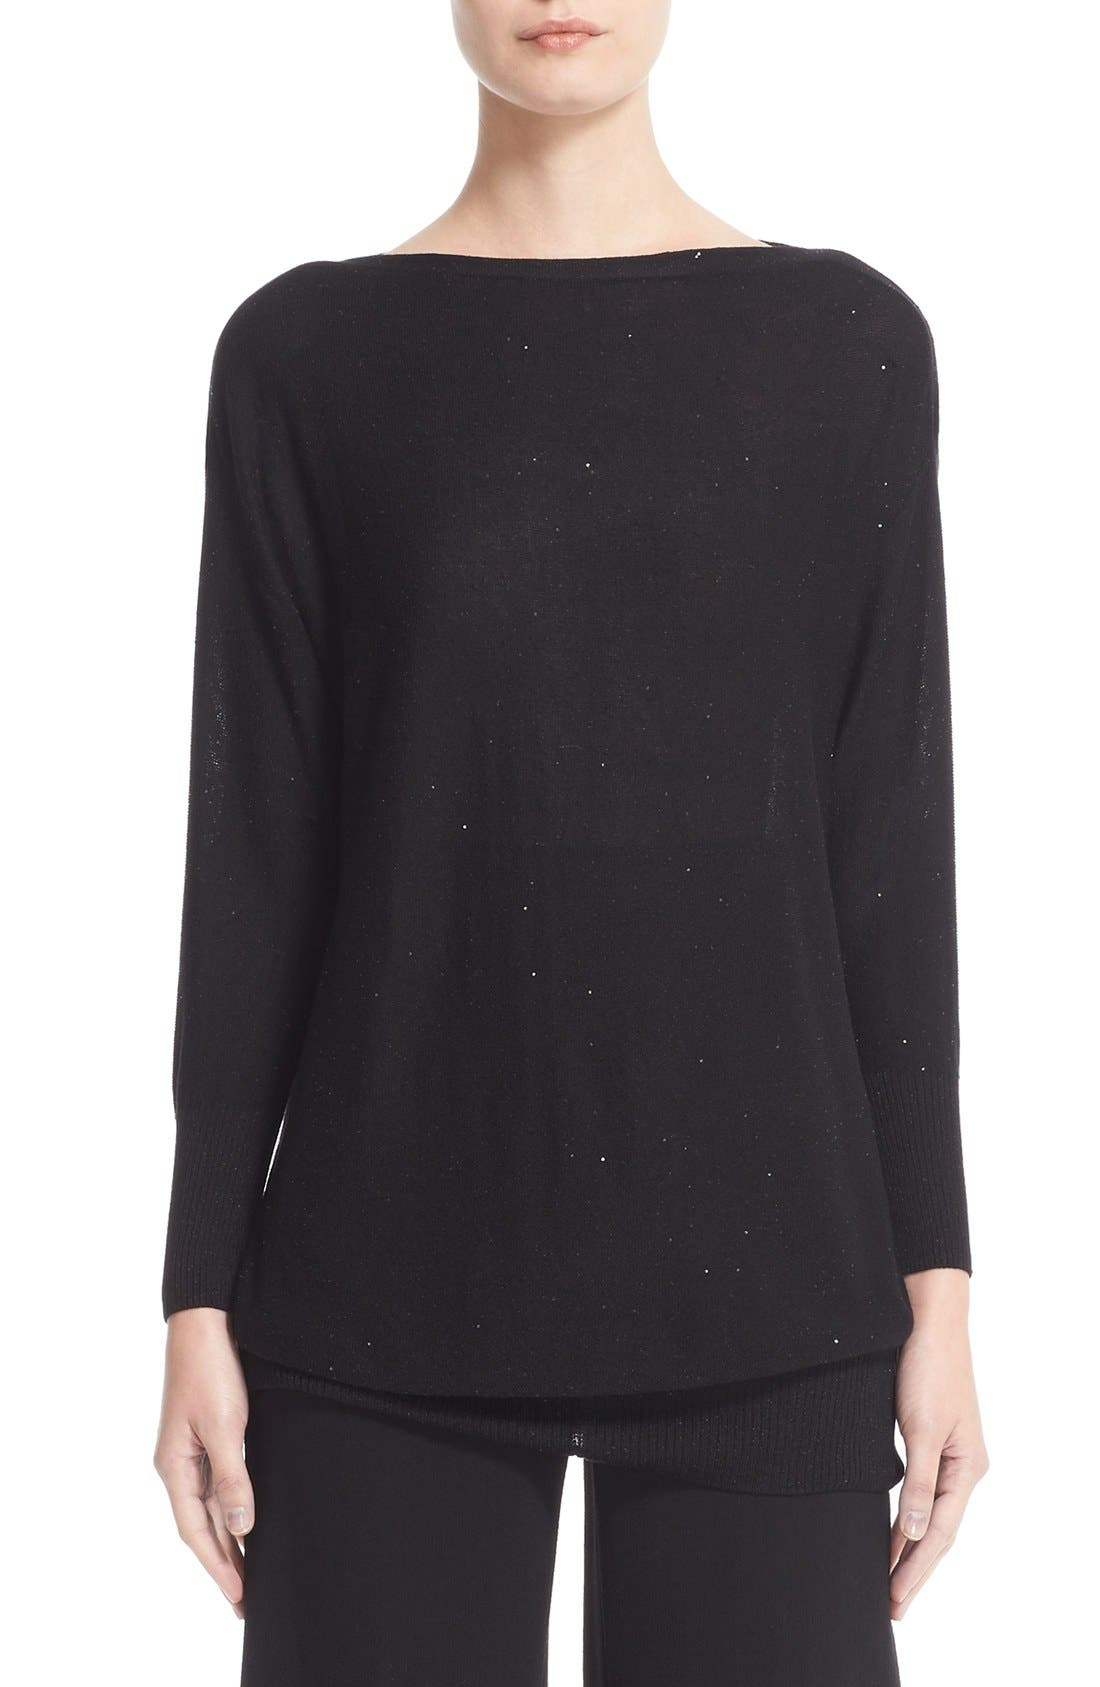 Alternate Image 1 Selected - Lela Rose Sequin Knit Silk Blend Sweater